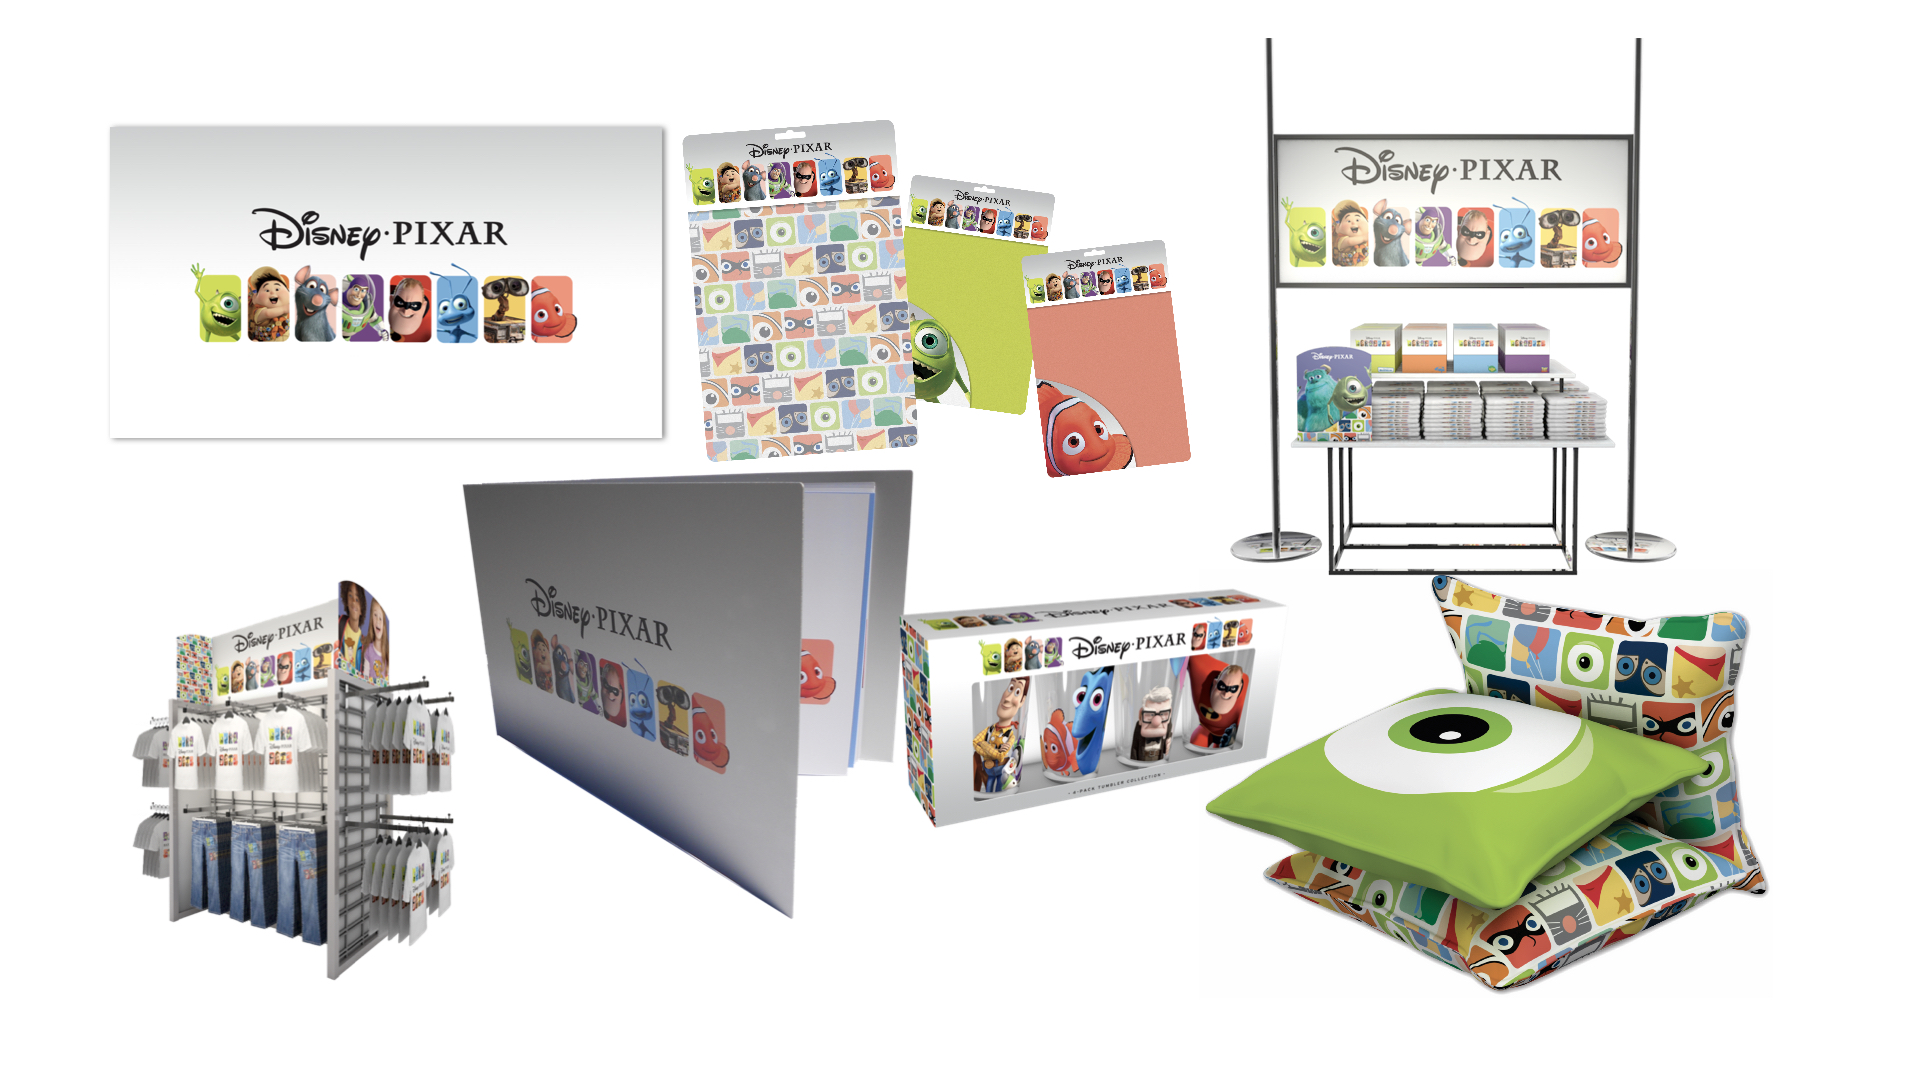 We conceptualized the Disney Pixar merchandise program and designed the packaging.